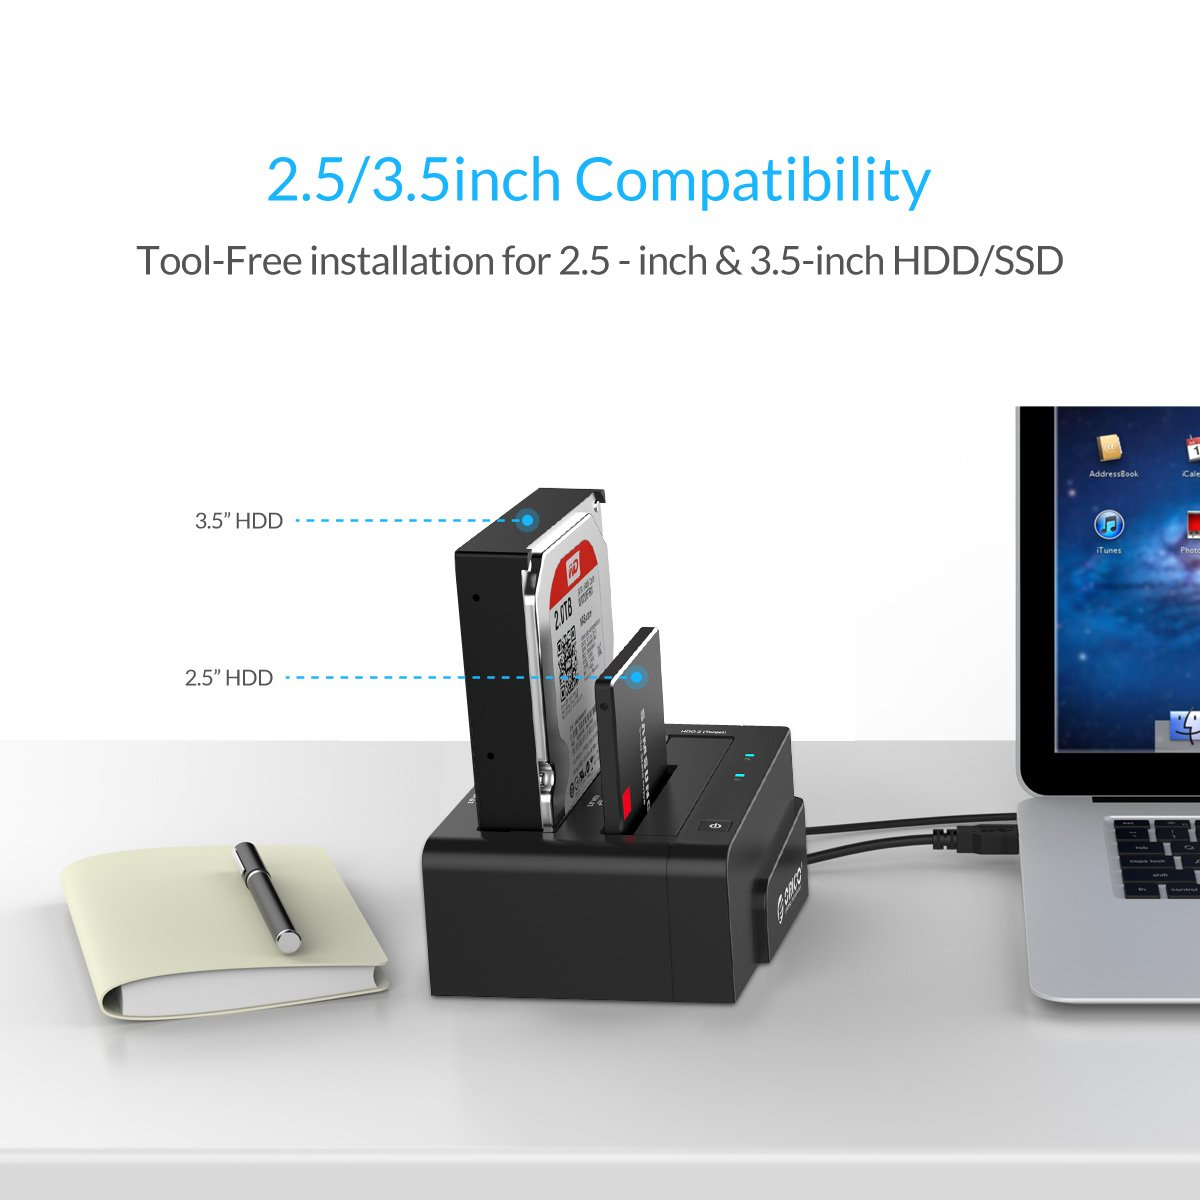 Orico Dual Bay 25 35 Inch Usb 30 Sata Hard Drive Docking 6228us3 C 2bay Harddisk Station Duplicator For Hdd Black Computers Tablets